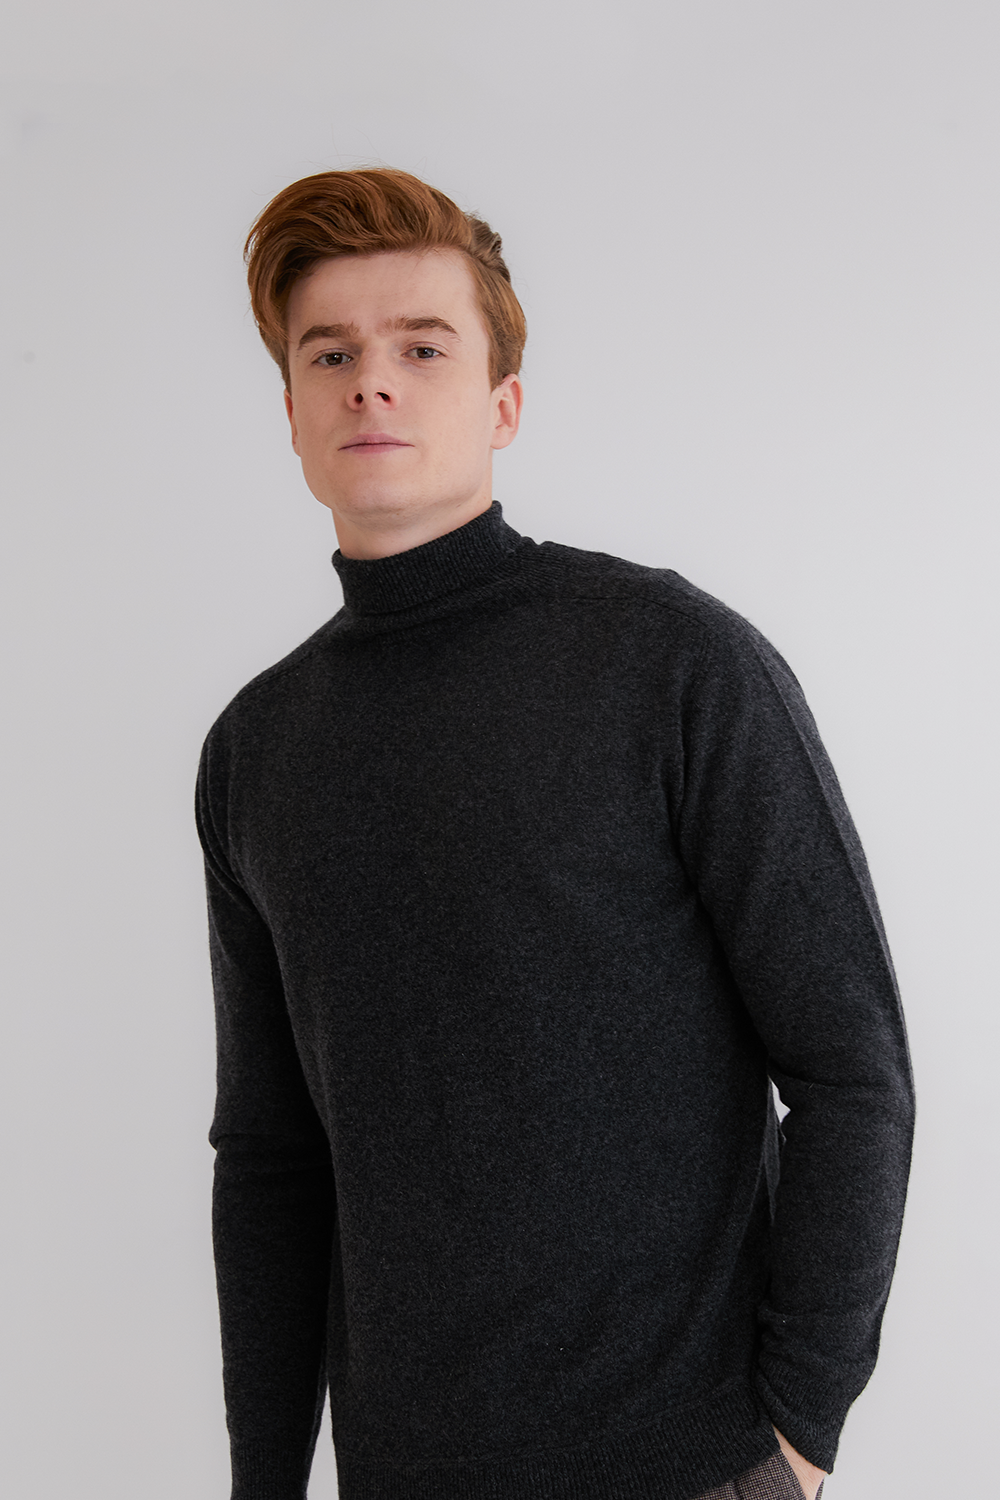 프리미엄 캐시미어 100 남성 스웨터 [Pure cashmere100 turtleneck sweater by whole-garment knitting - Charcoal black]